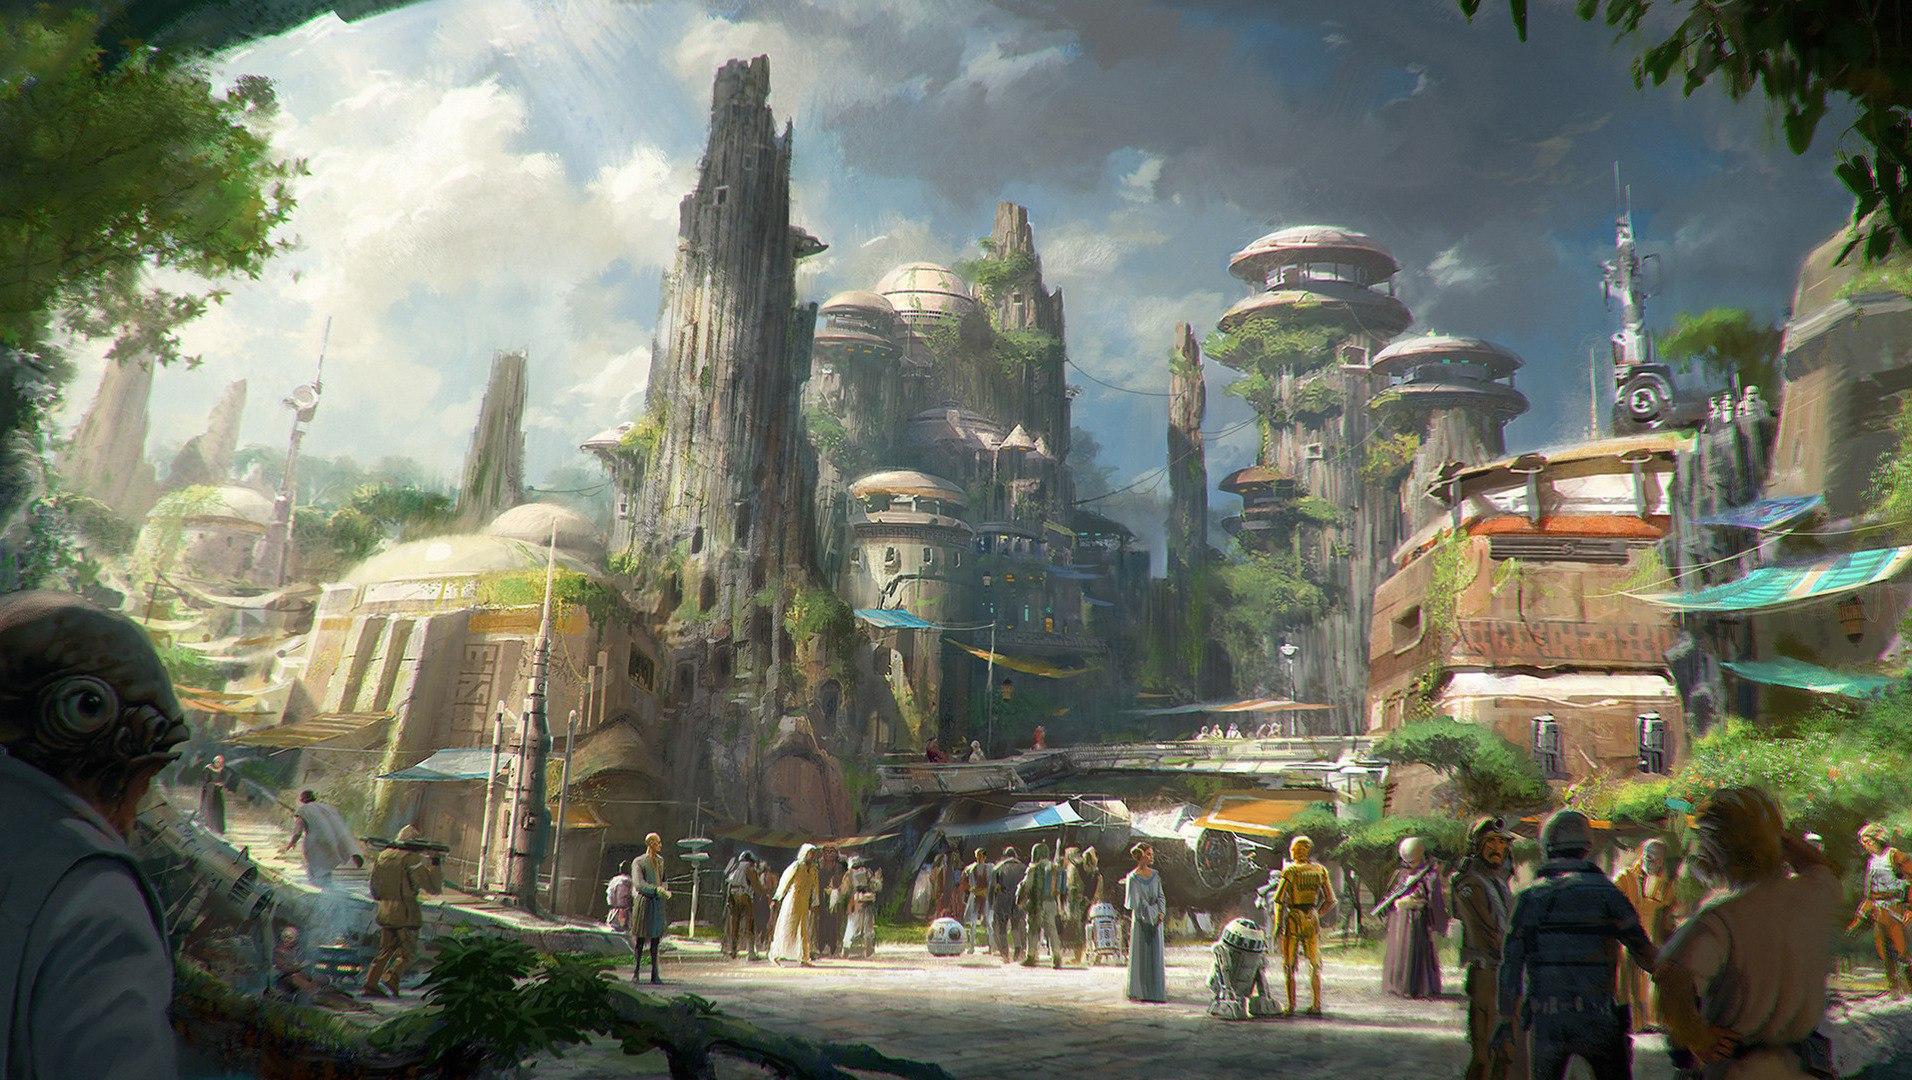 Star Wars Land: Our first glimpse of its layout and attractions